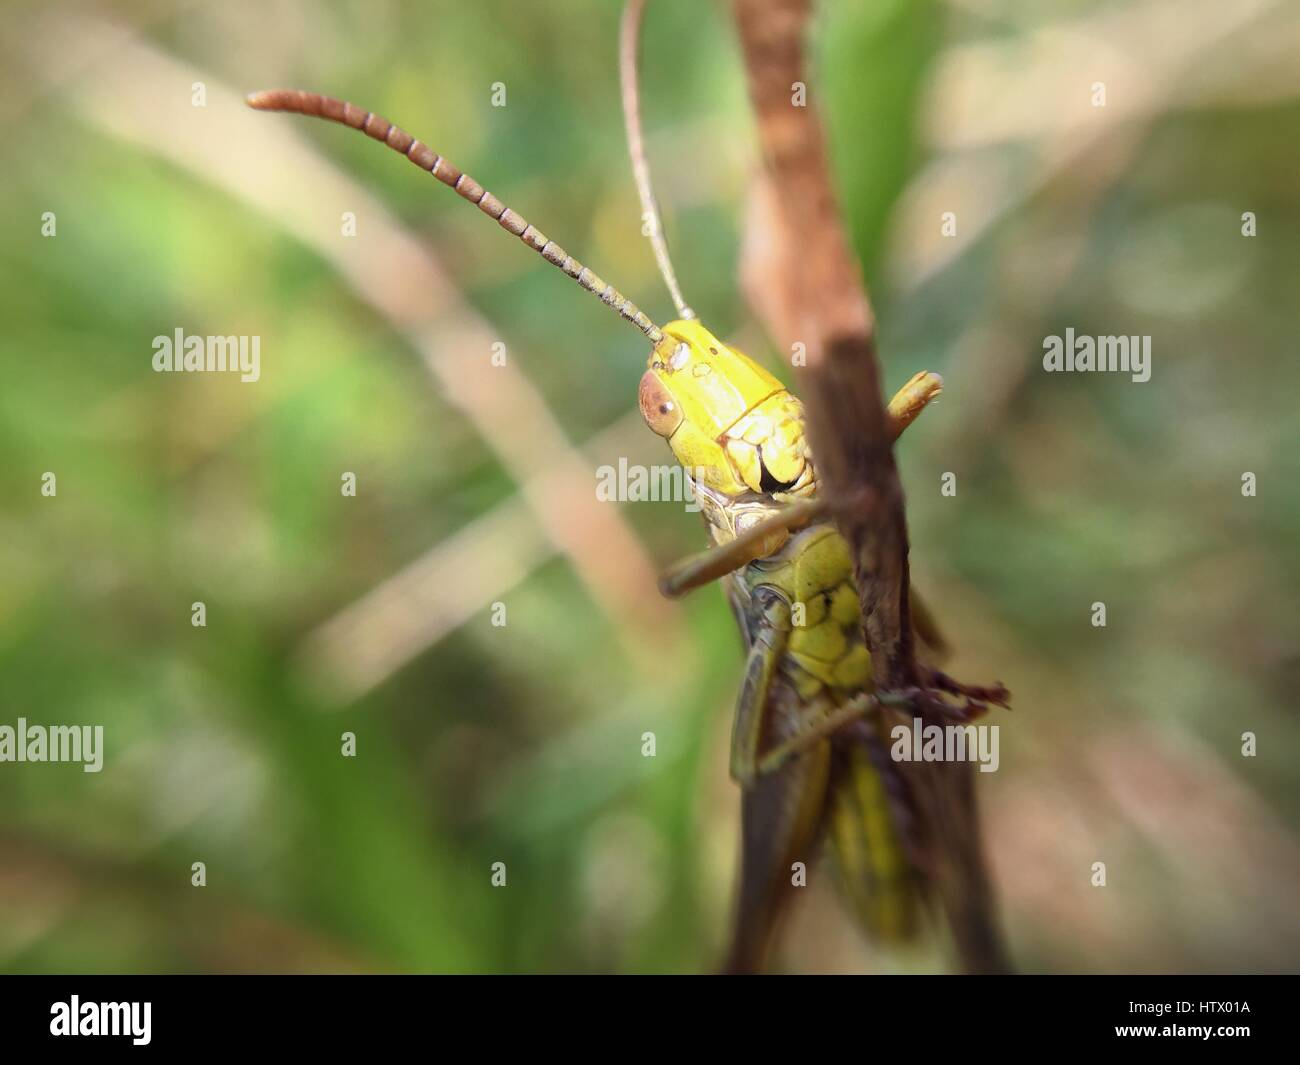 A grasshopper sitting on a twig - Stock Image